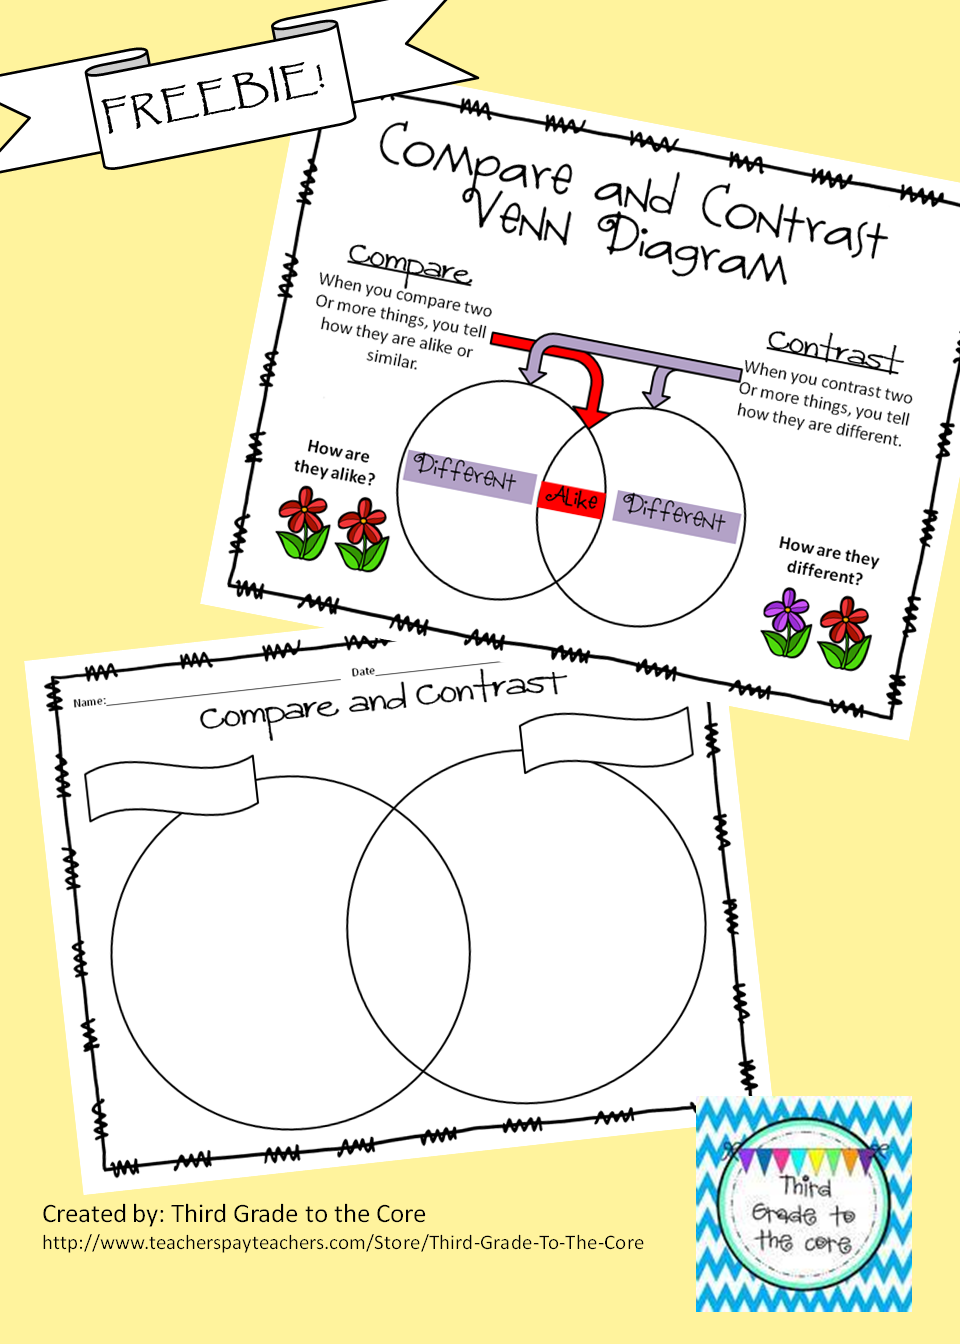 hight resolution of Freebie! Compare and Contrast Venn Diagram with Classroom Poster!   Compare  and contrast